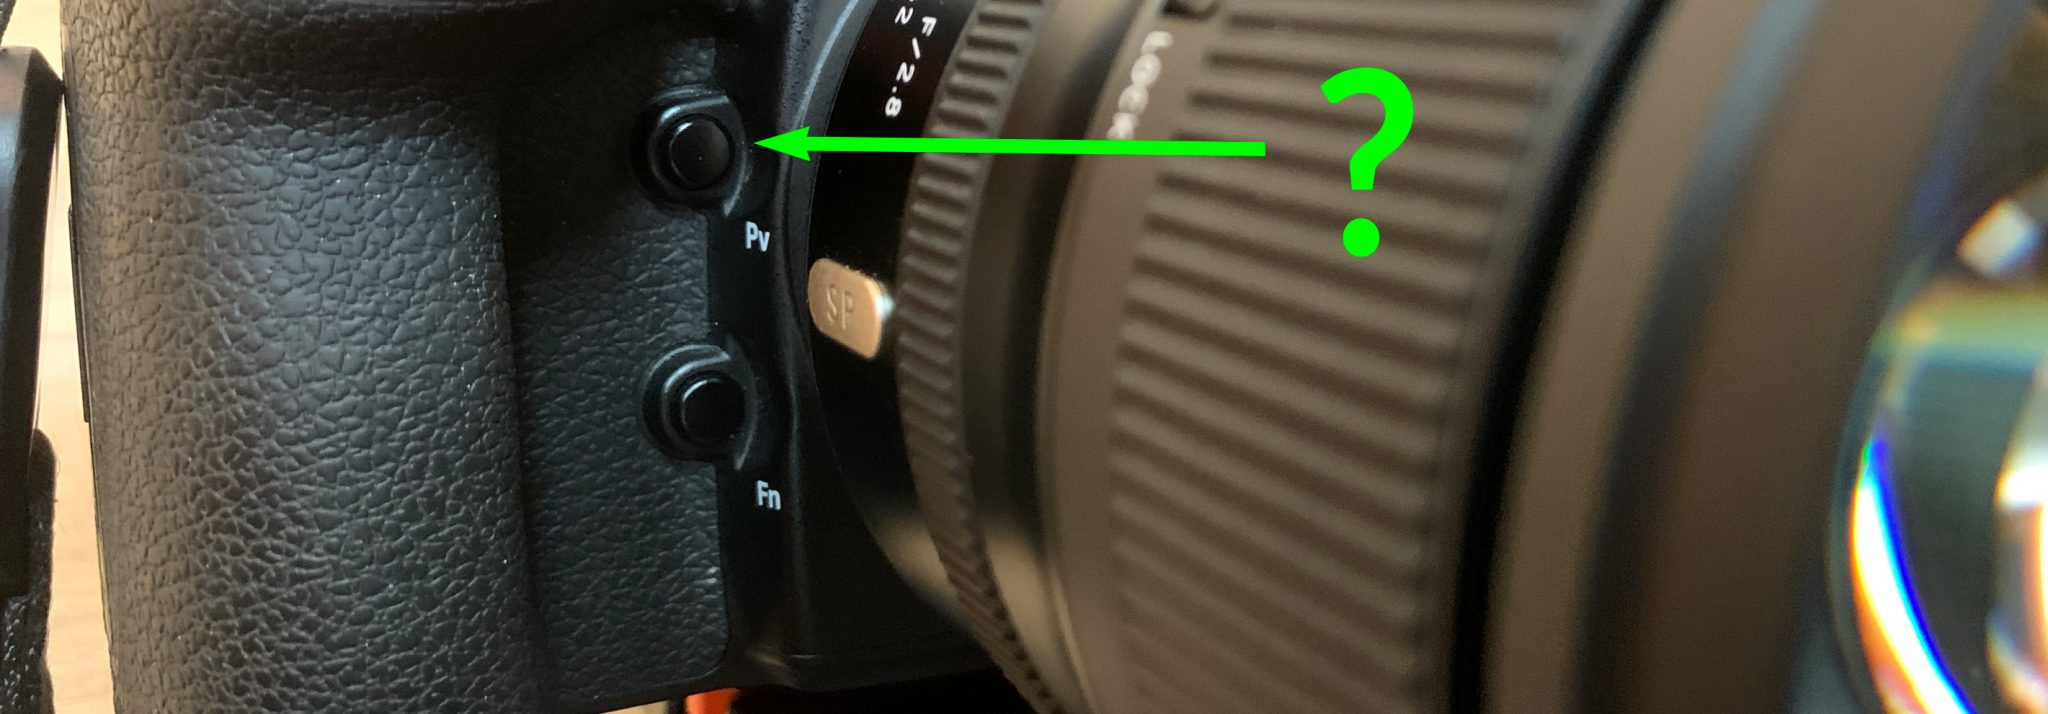 What is the Depth of Field Preview Button?